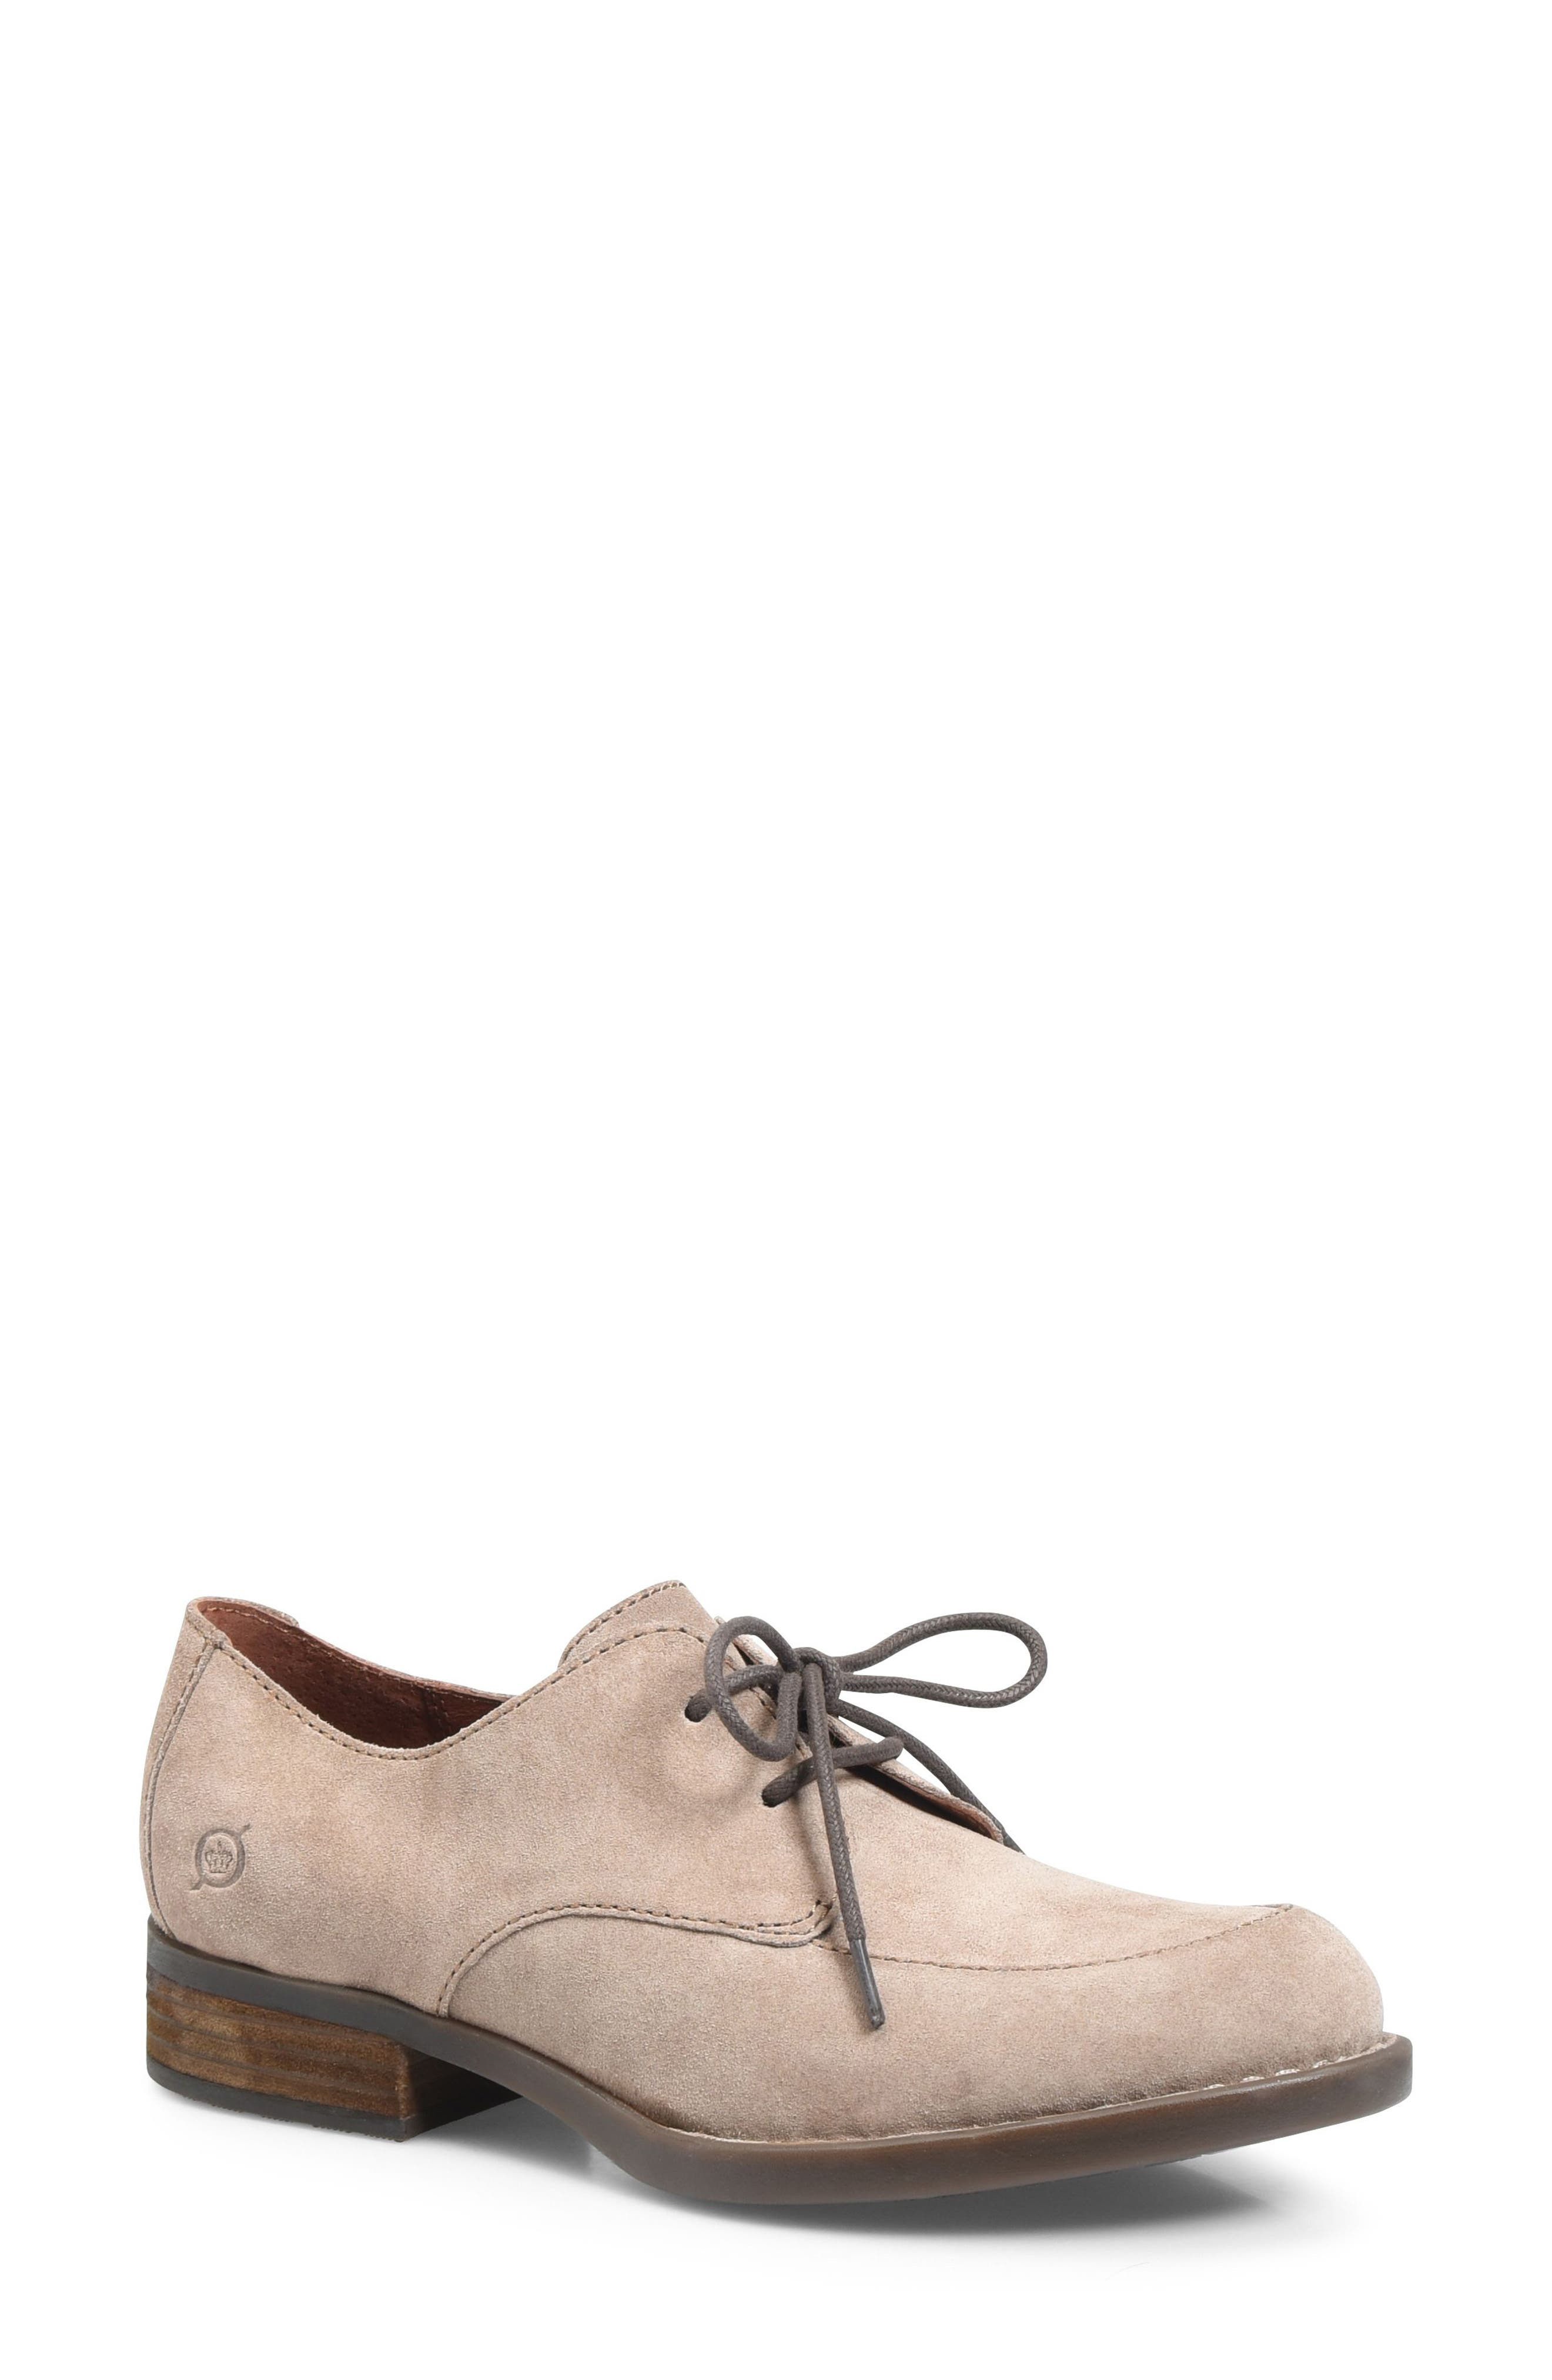 Rora Derby,                             Main thumbnail 1, color,                             Taupe Suede